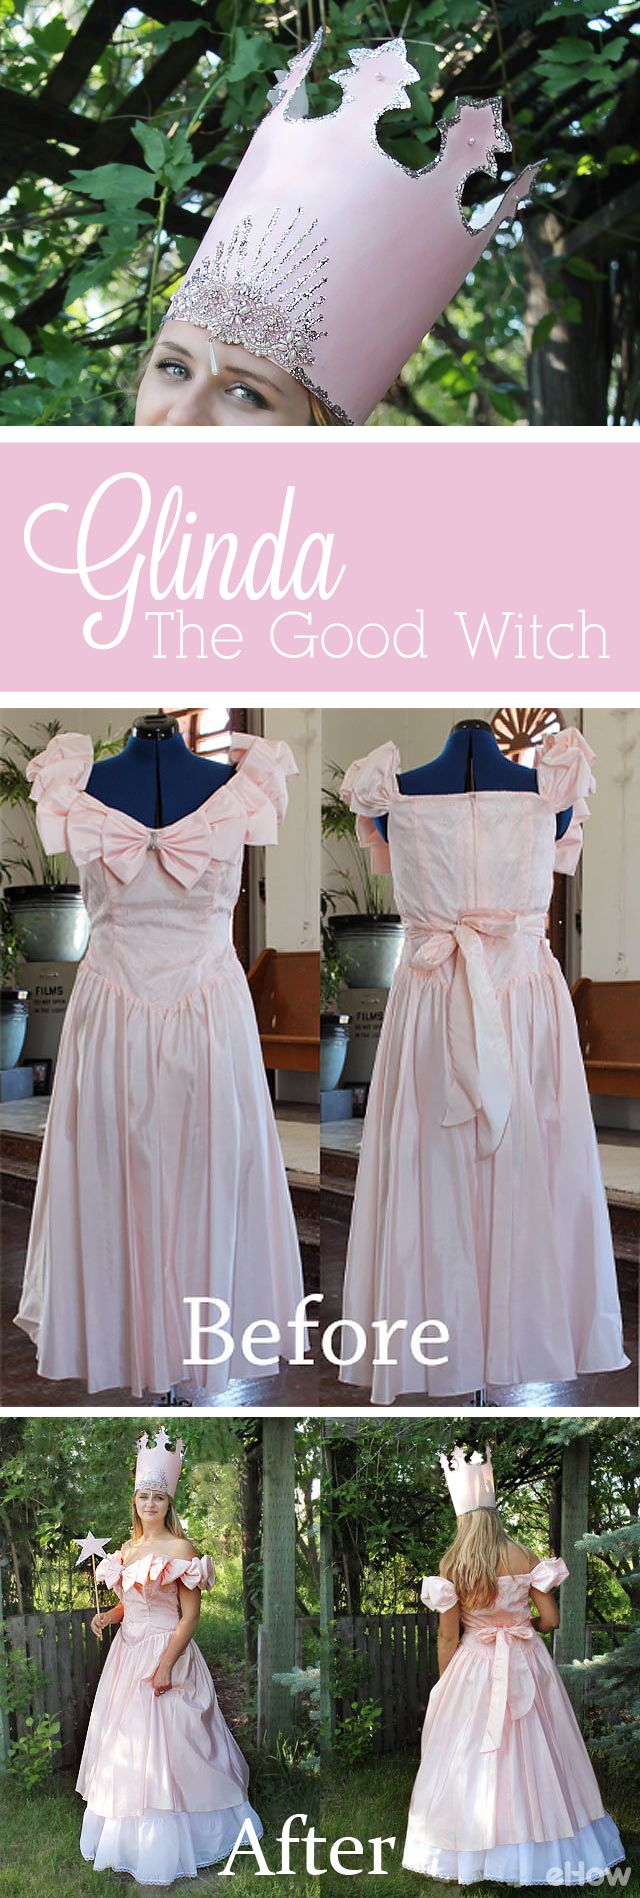 Best 25+ Glinda the good witch ideas on Pinterest | Glenda the ...